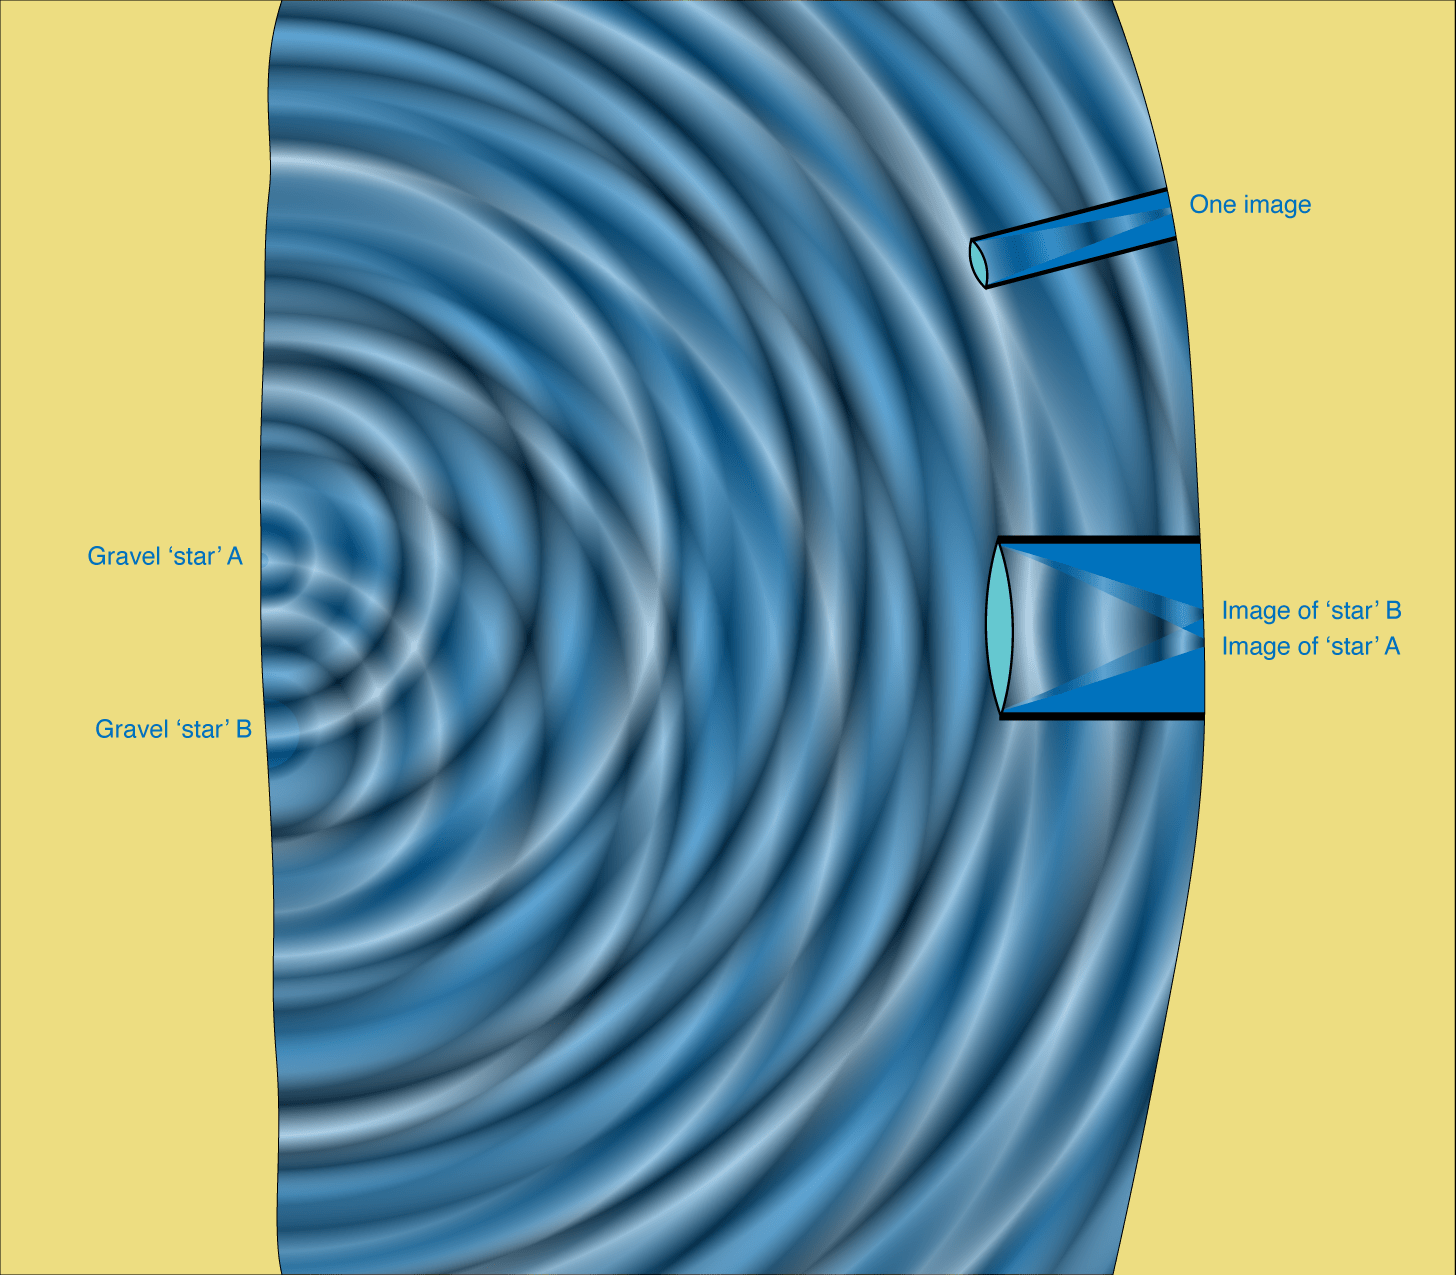 Large and small telescopes looking at the same two stars. Because the waves appear different at the far edges of the large telescope, it can sort the waves into two sources. For the small telescope, the waves look the same across the lens, so it sees the two stars as a single unresolved source.